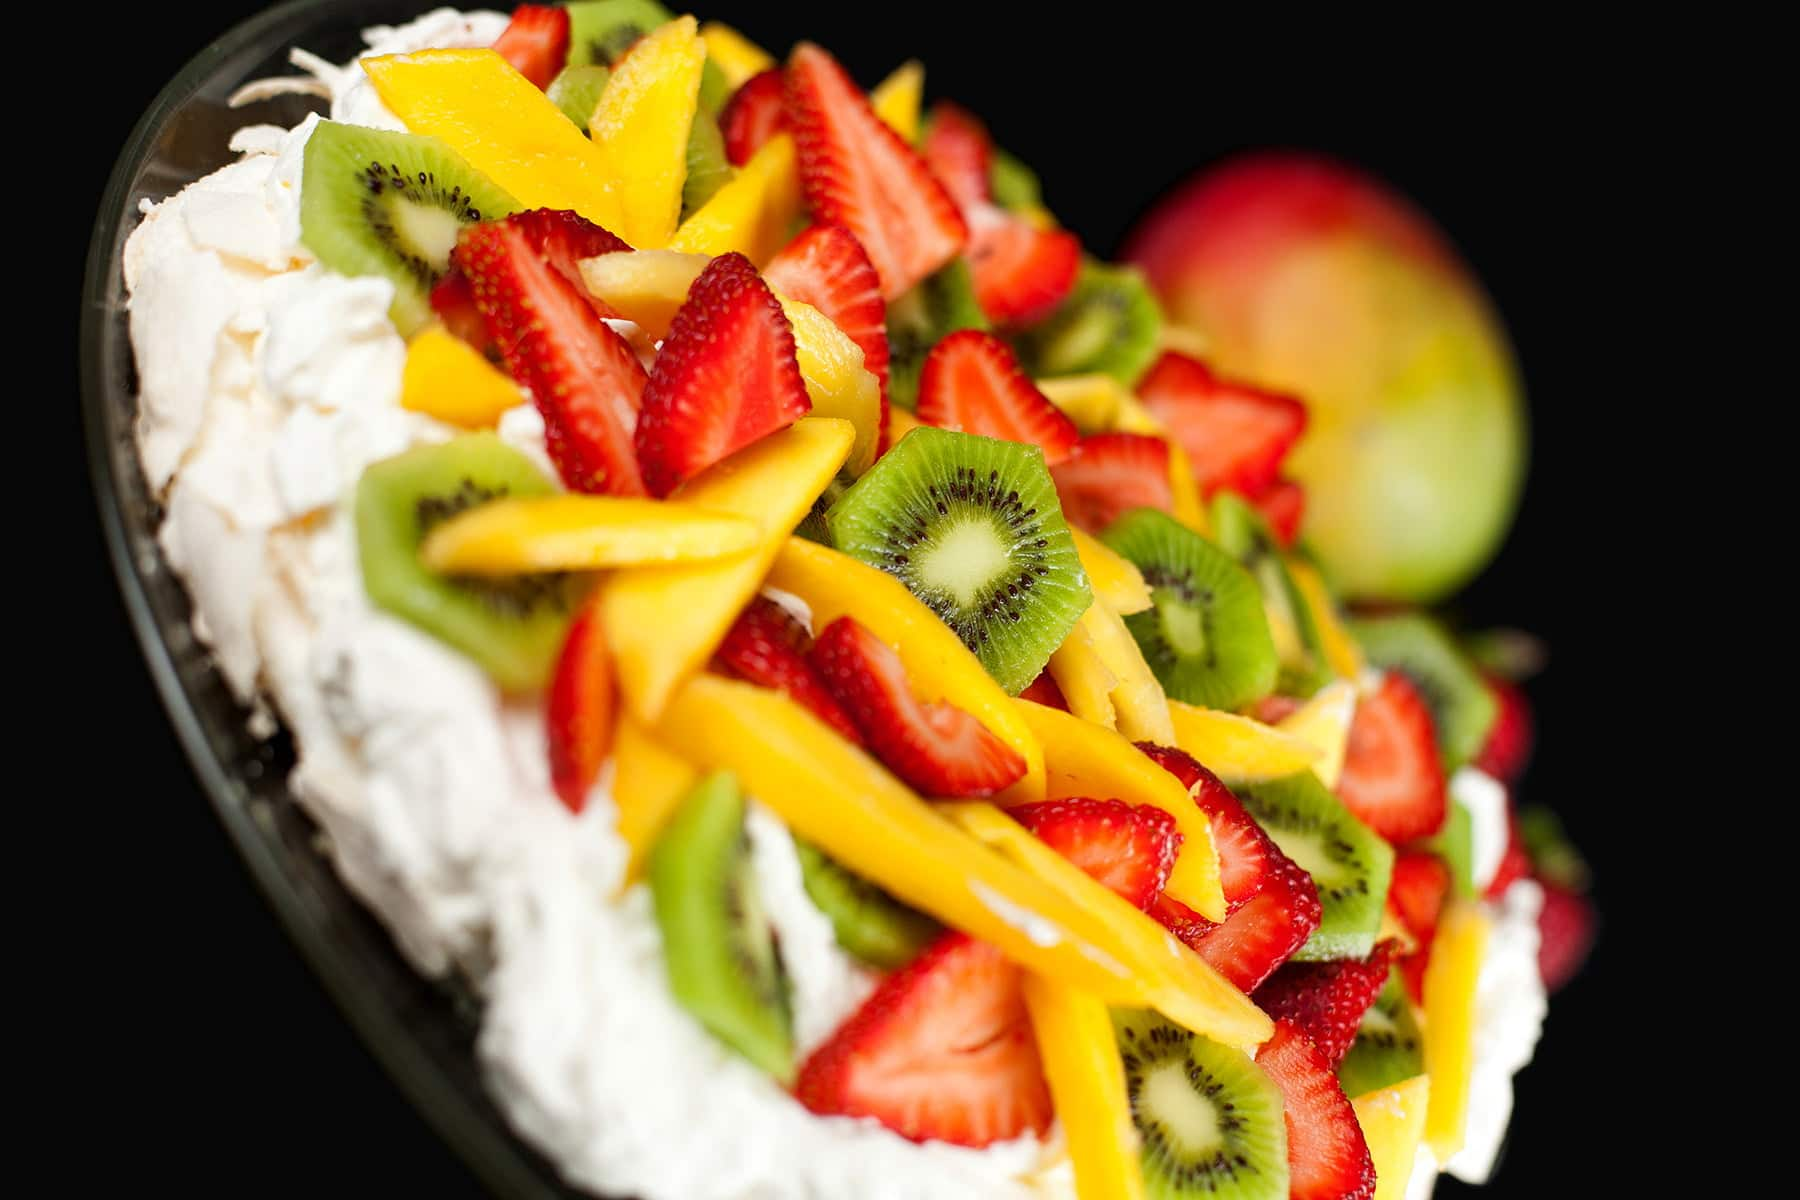 Close up view of a Pavlova: White meringue topped with whipped cream, strawberries, kiwi fruit, and mango slices.